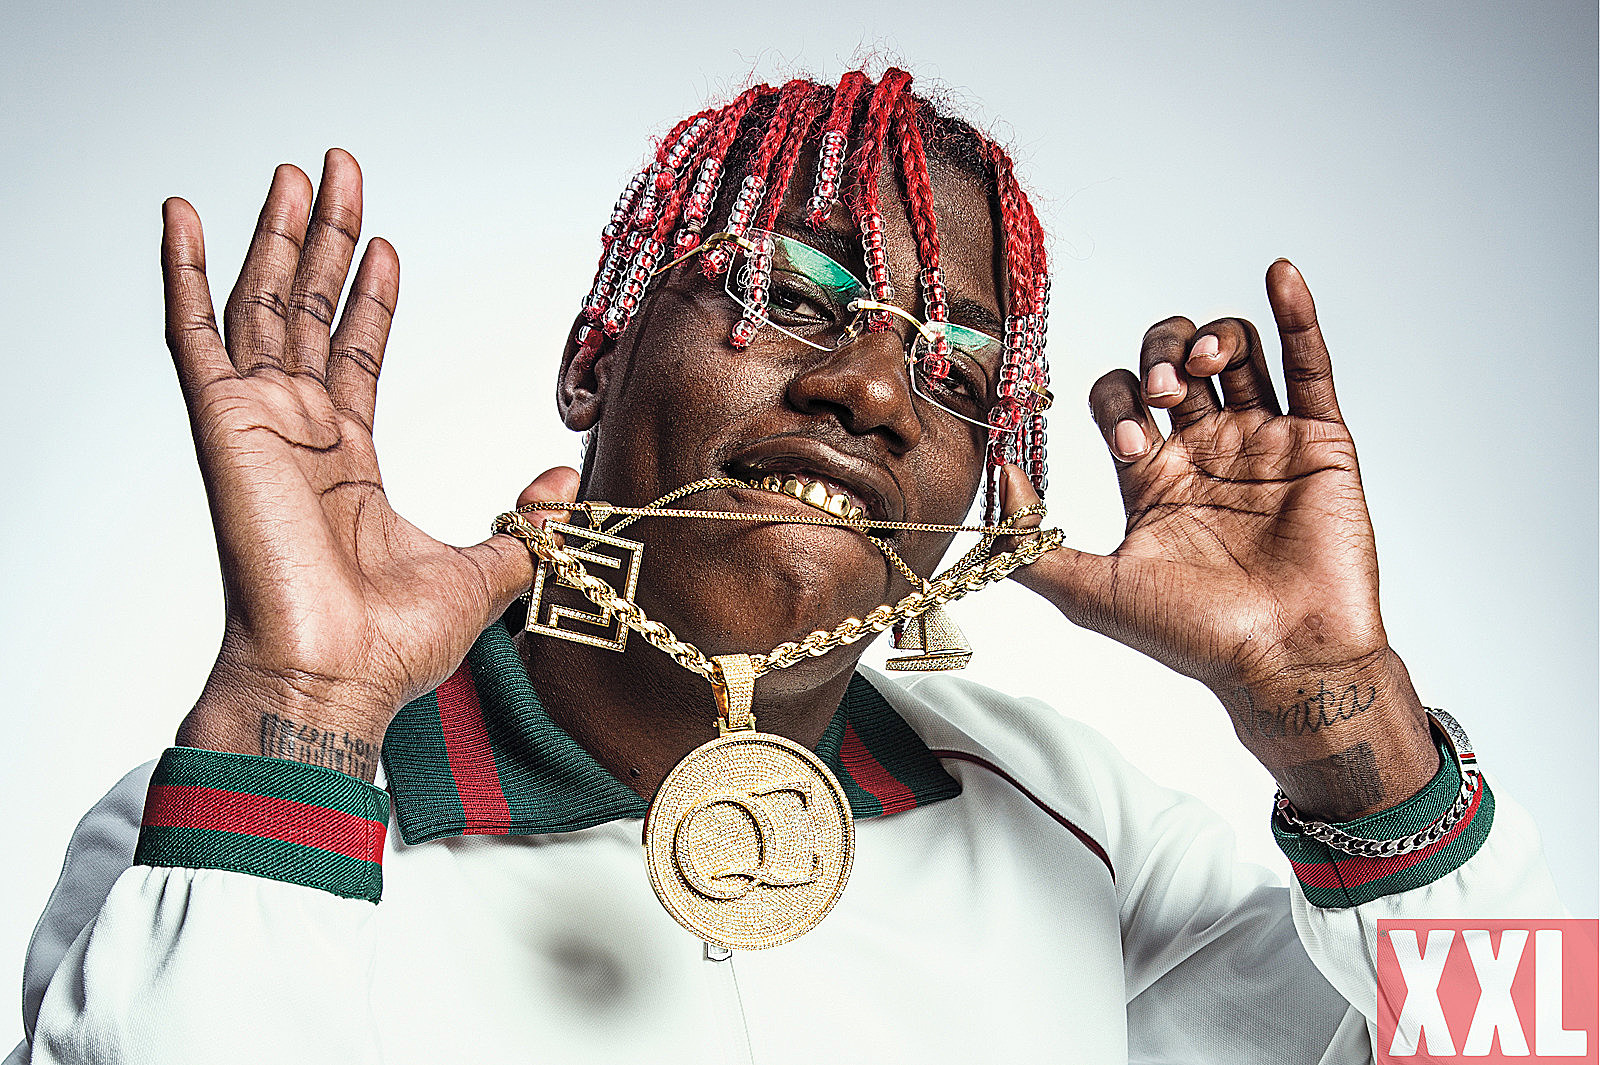 https://townsquare.media/site/812/files/2019/06/lil-yachty-2016-freshman.jpg